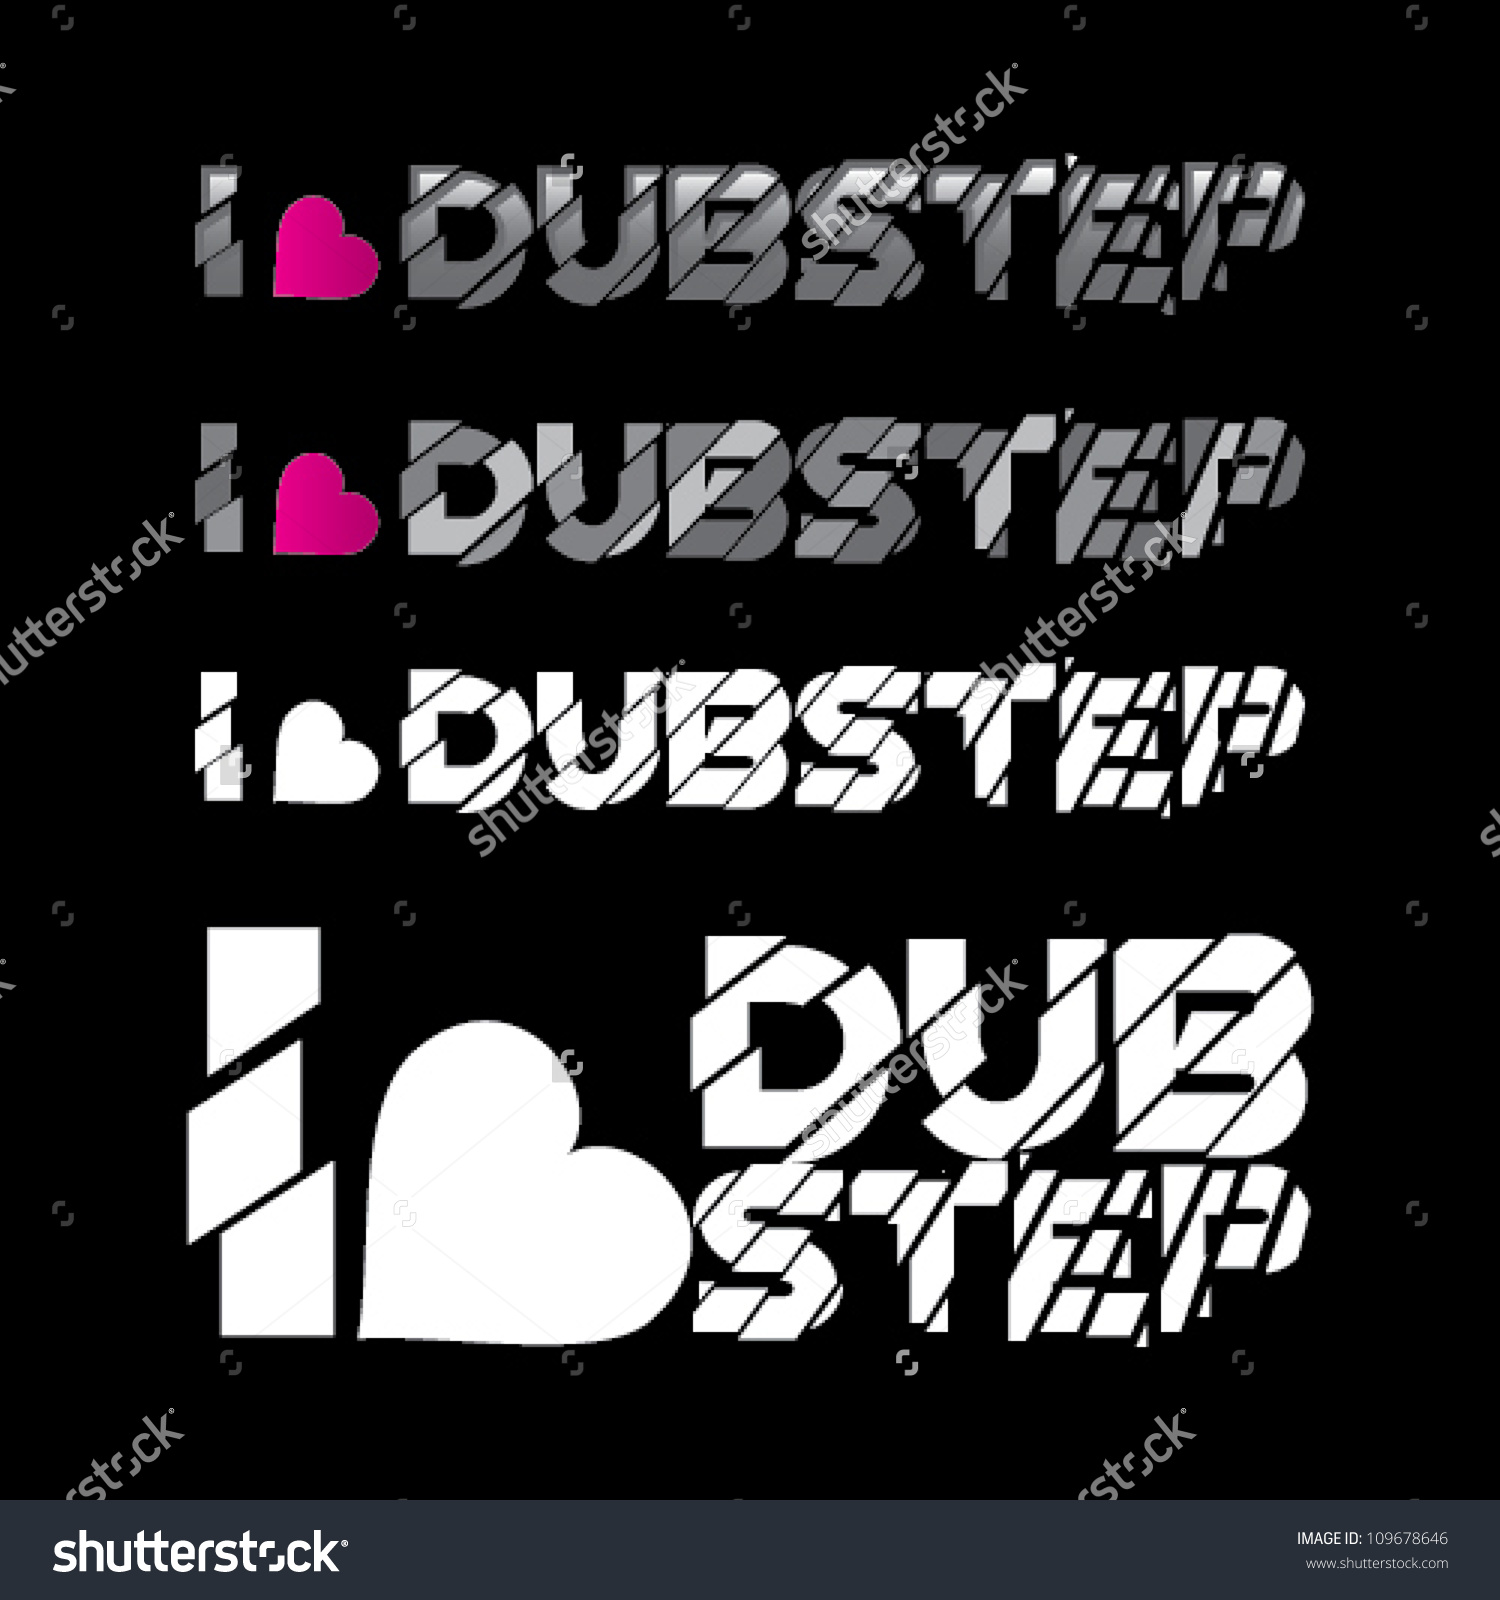 Dubstep clipart #2, Download drawings